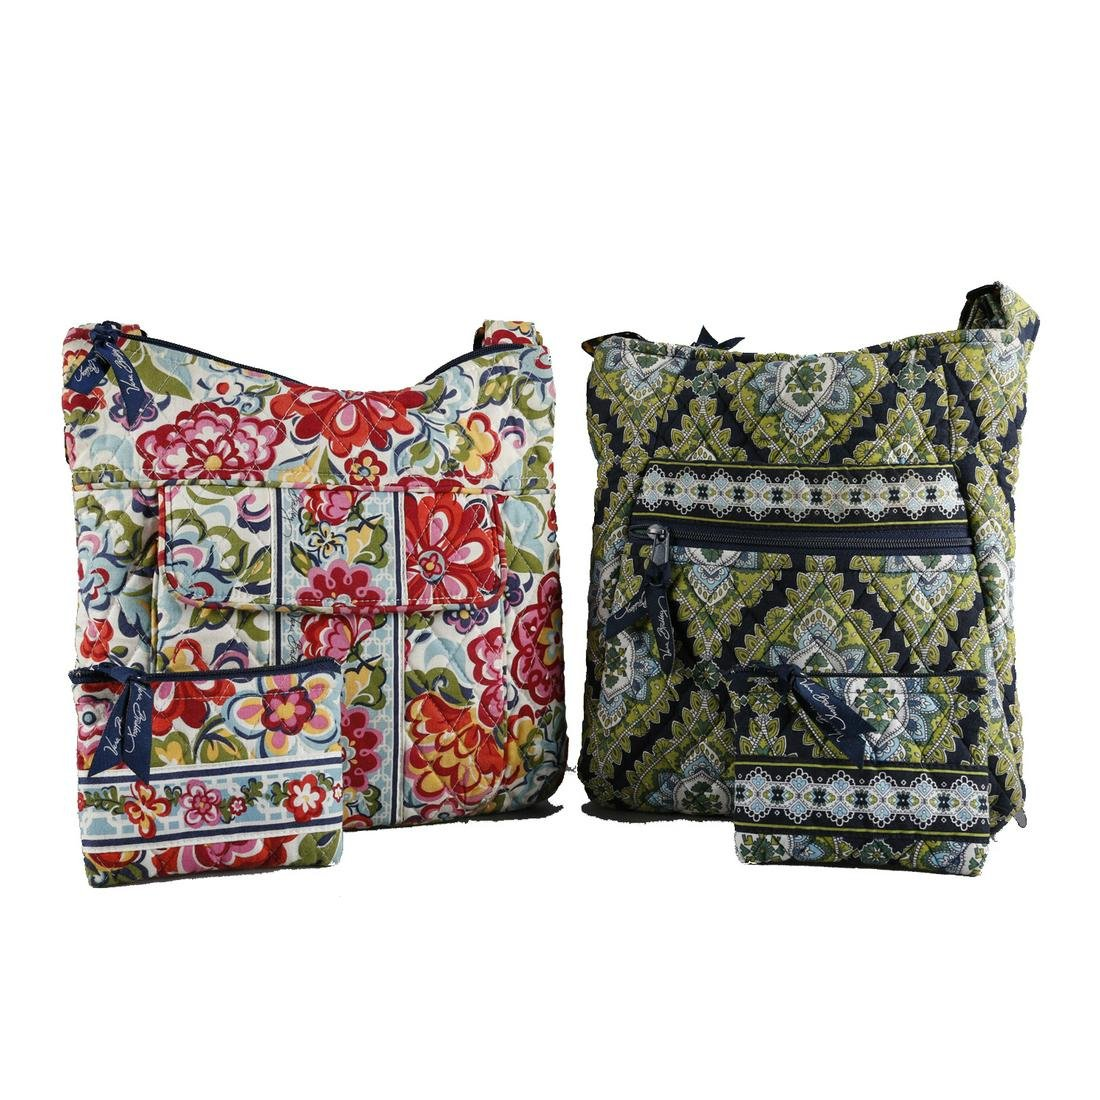 2 Vera Bradley Shoulder Bags with Matching Coins